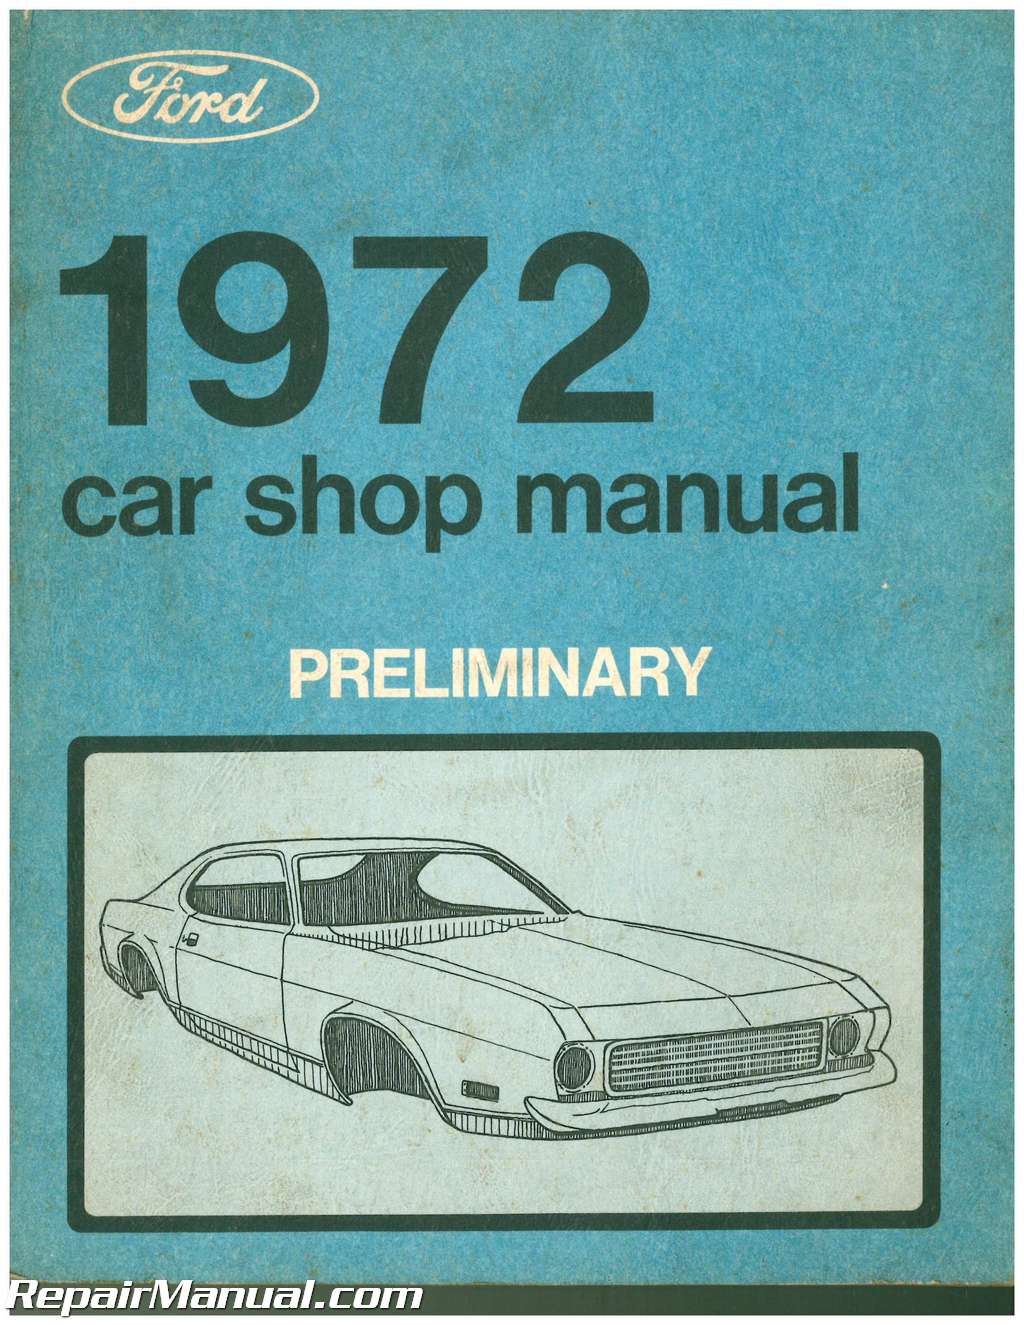 Ford Car Shop Manual Preliminary